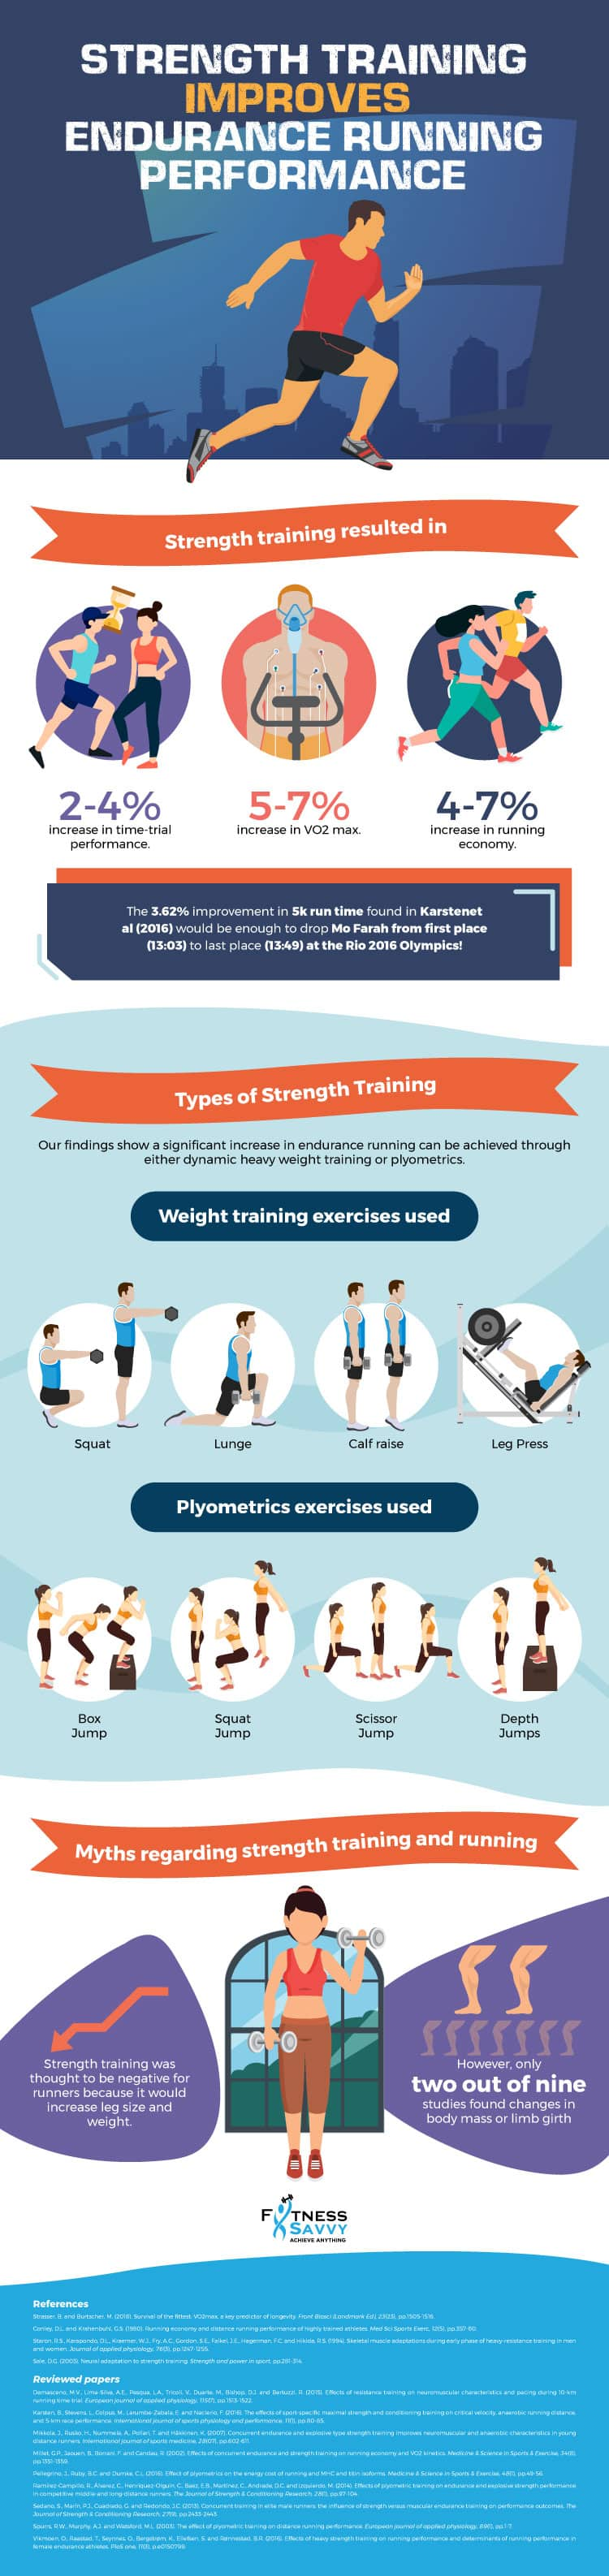 Strength Training Improves Running Performance Infographic